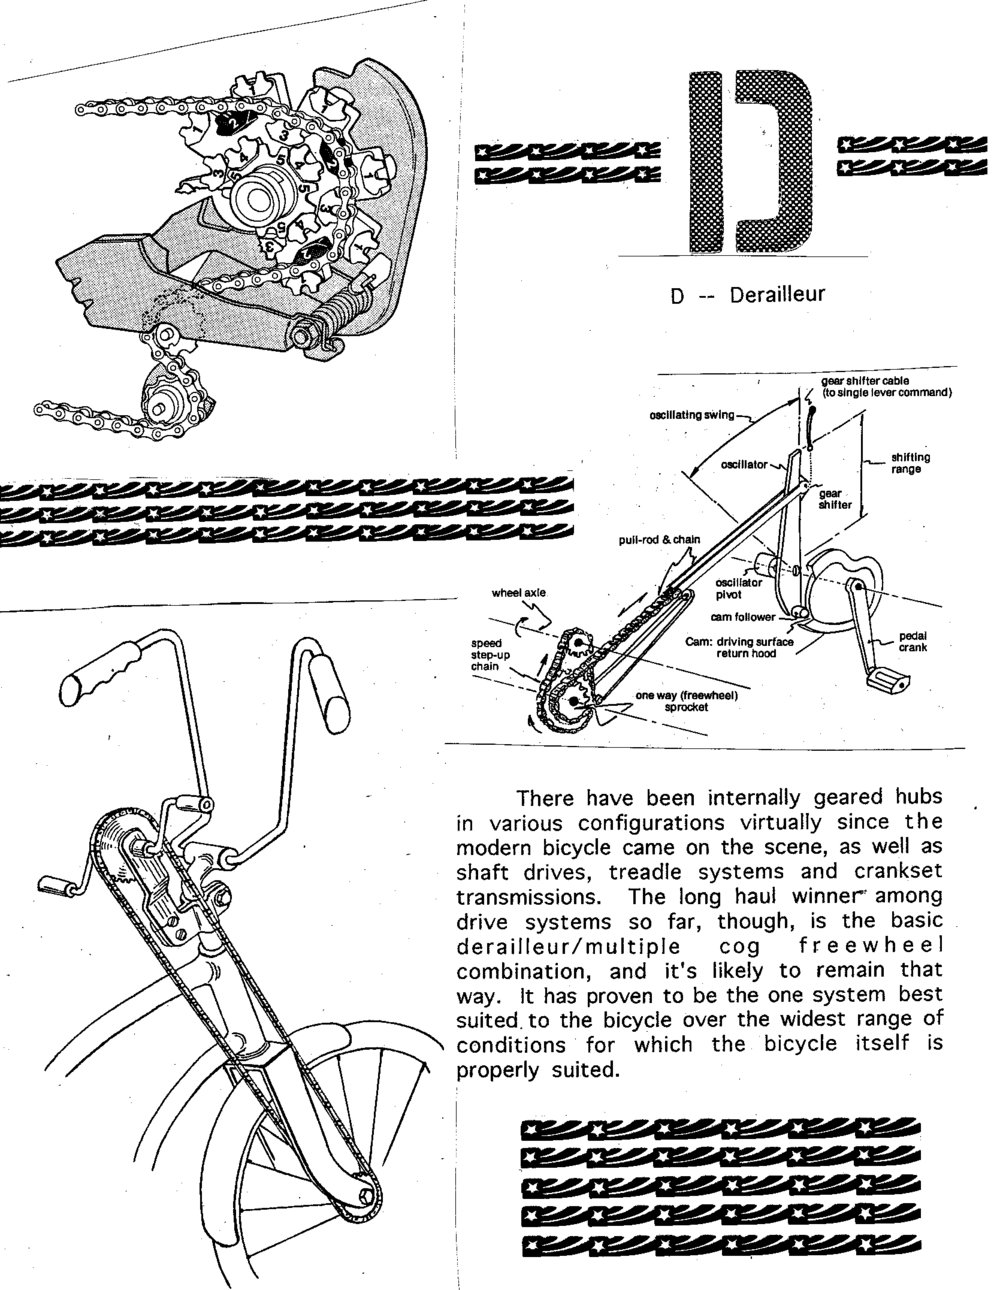 8 Compton Bicycle ABC - D1.jpg